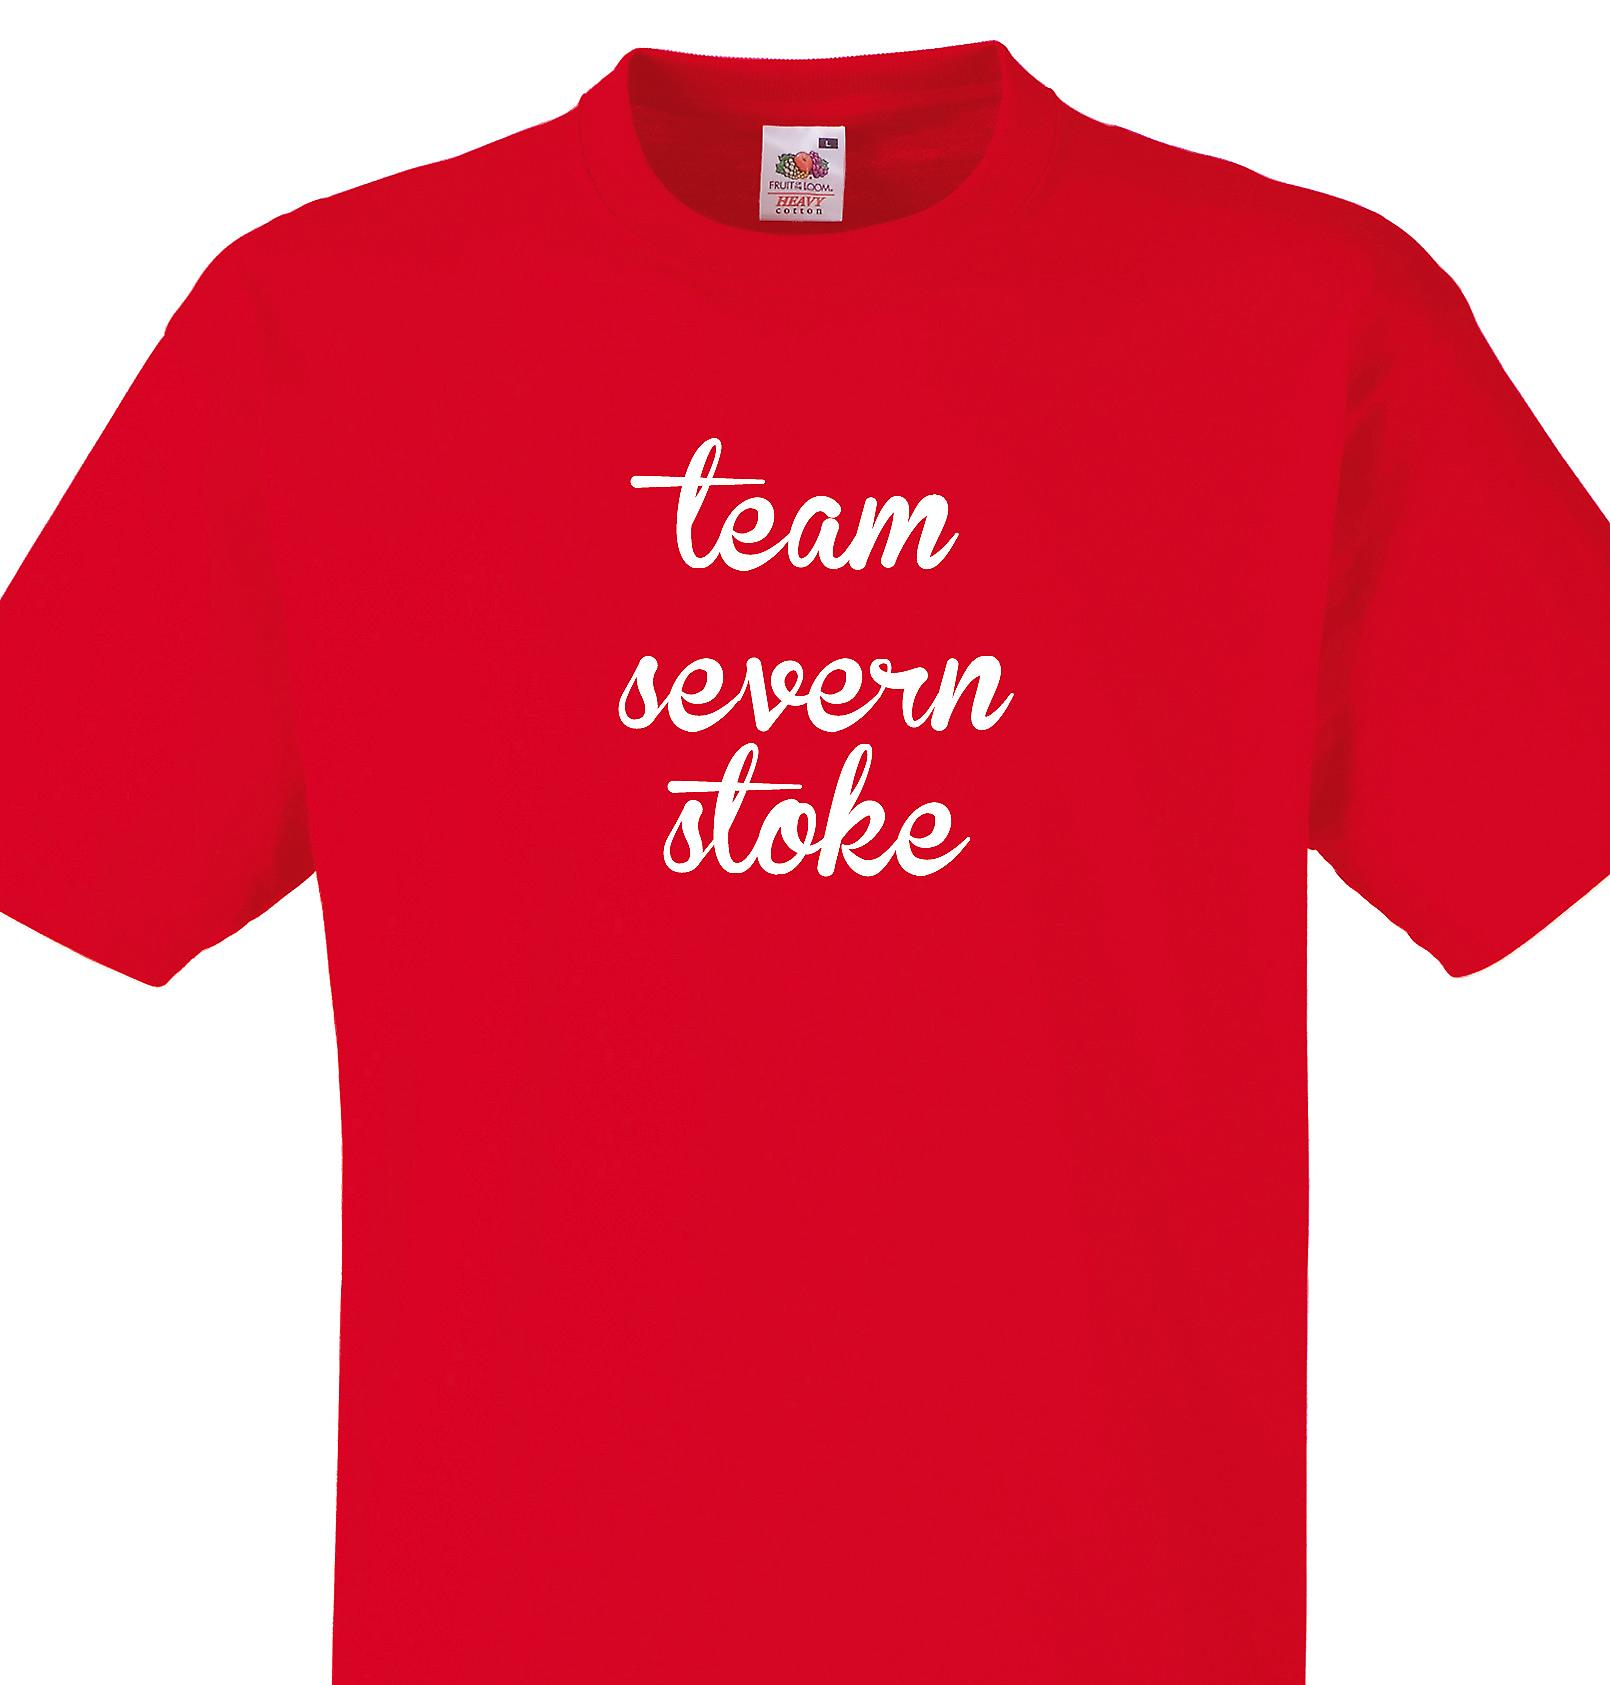 Team Severn stoke Red T shirt